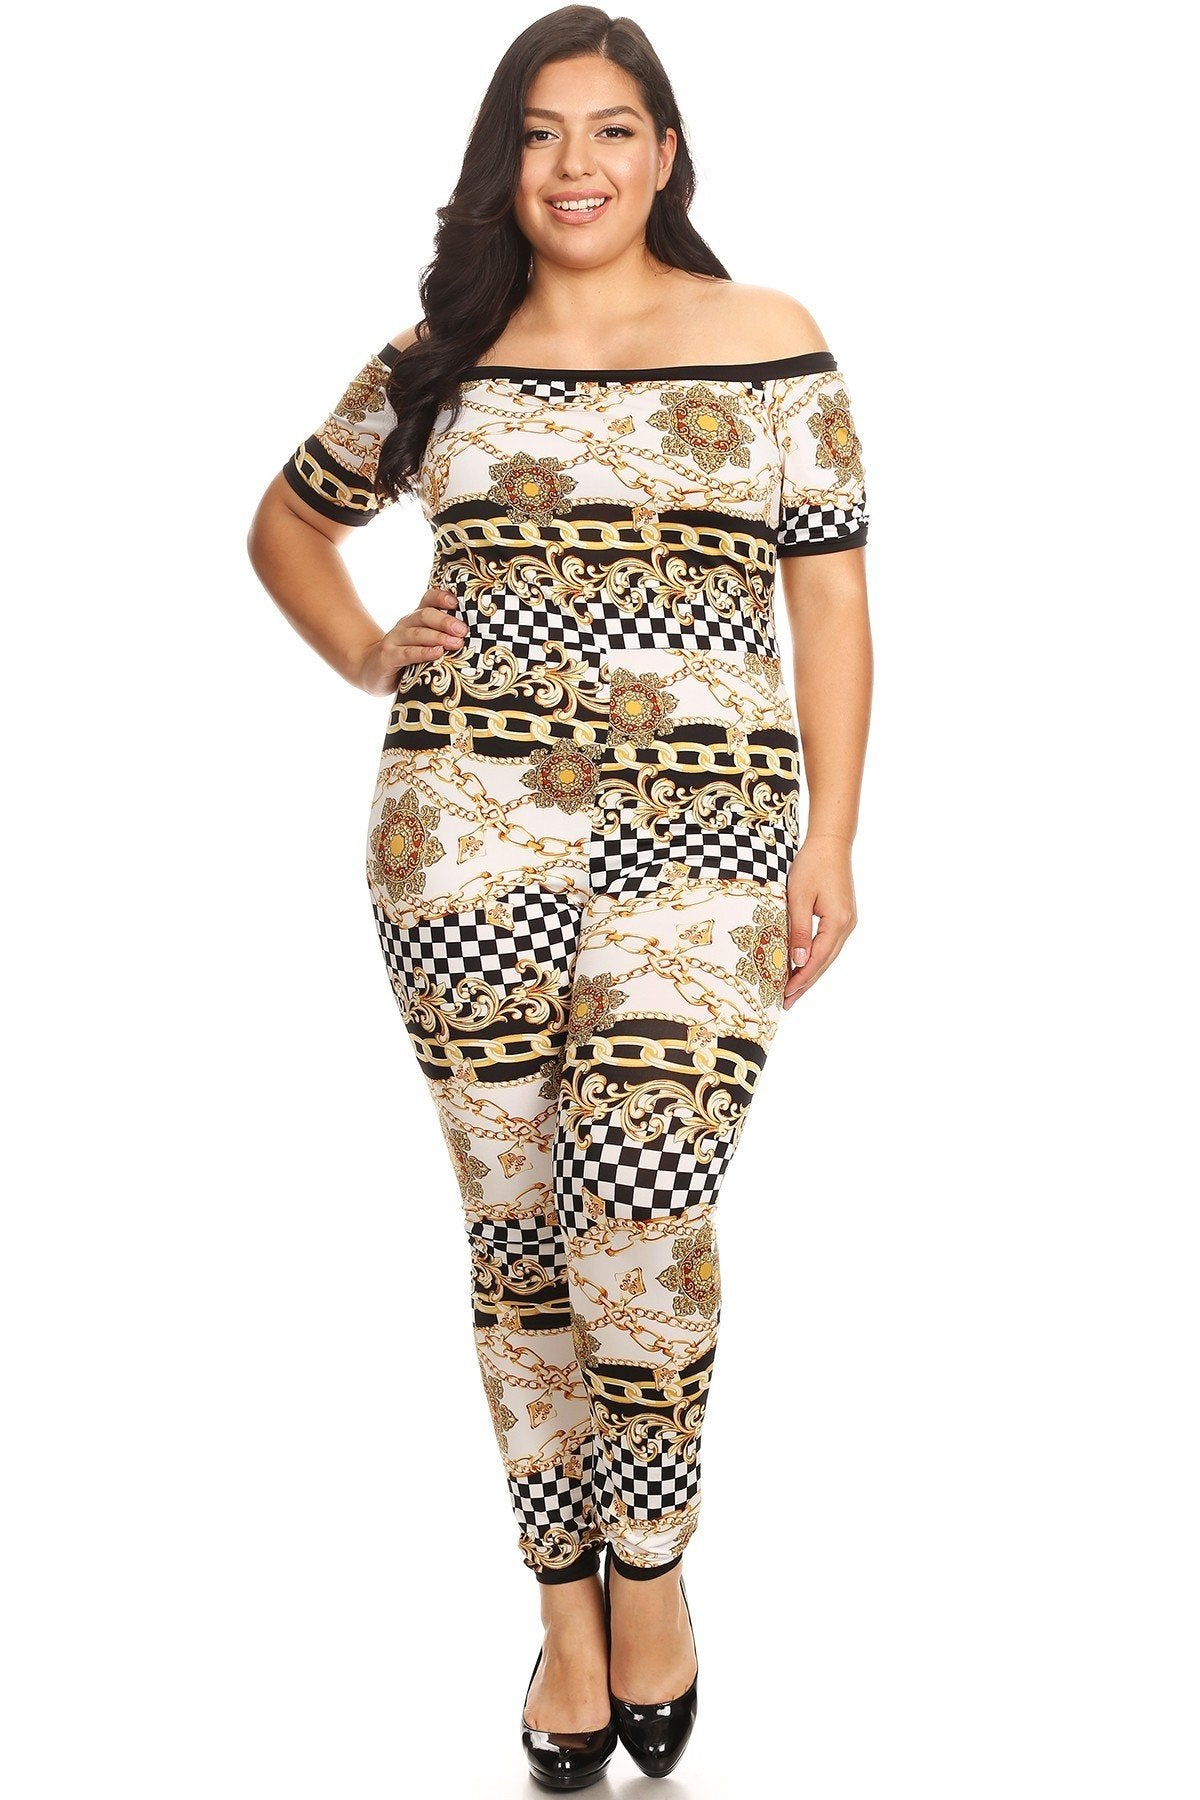 42eed02a7872d Plus Size Chains Printed Bodycon Fit Checkered Jumpsuit – slayboo